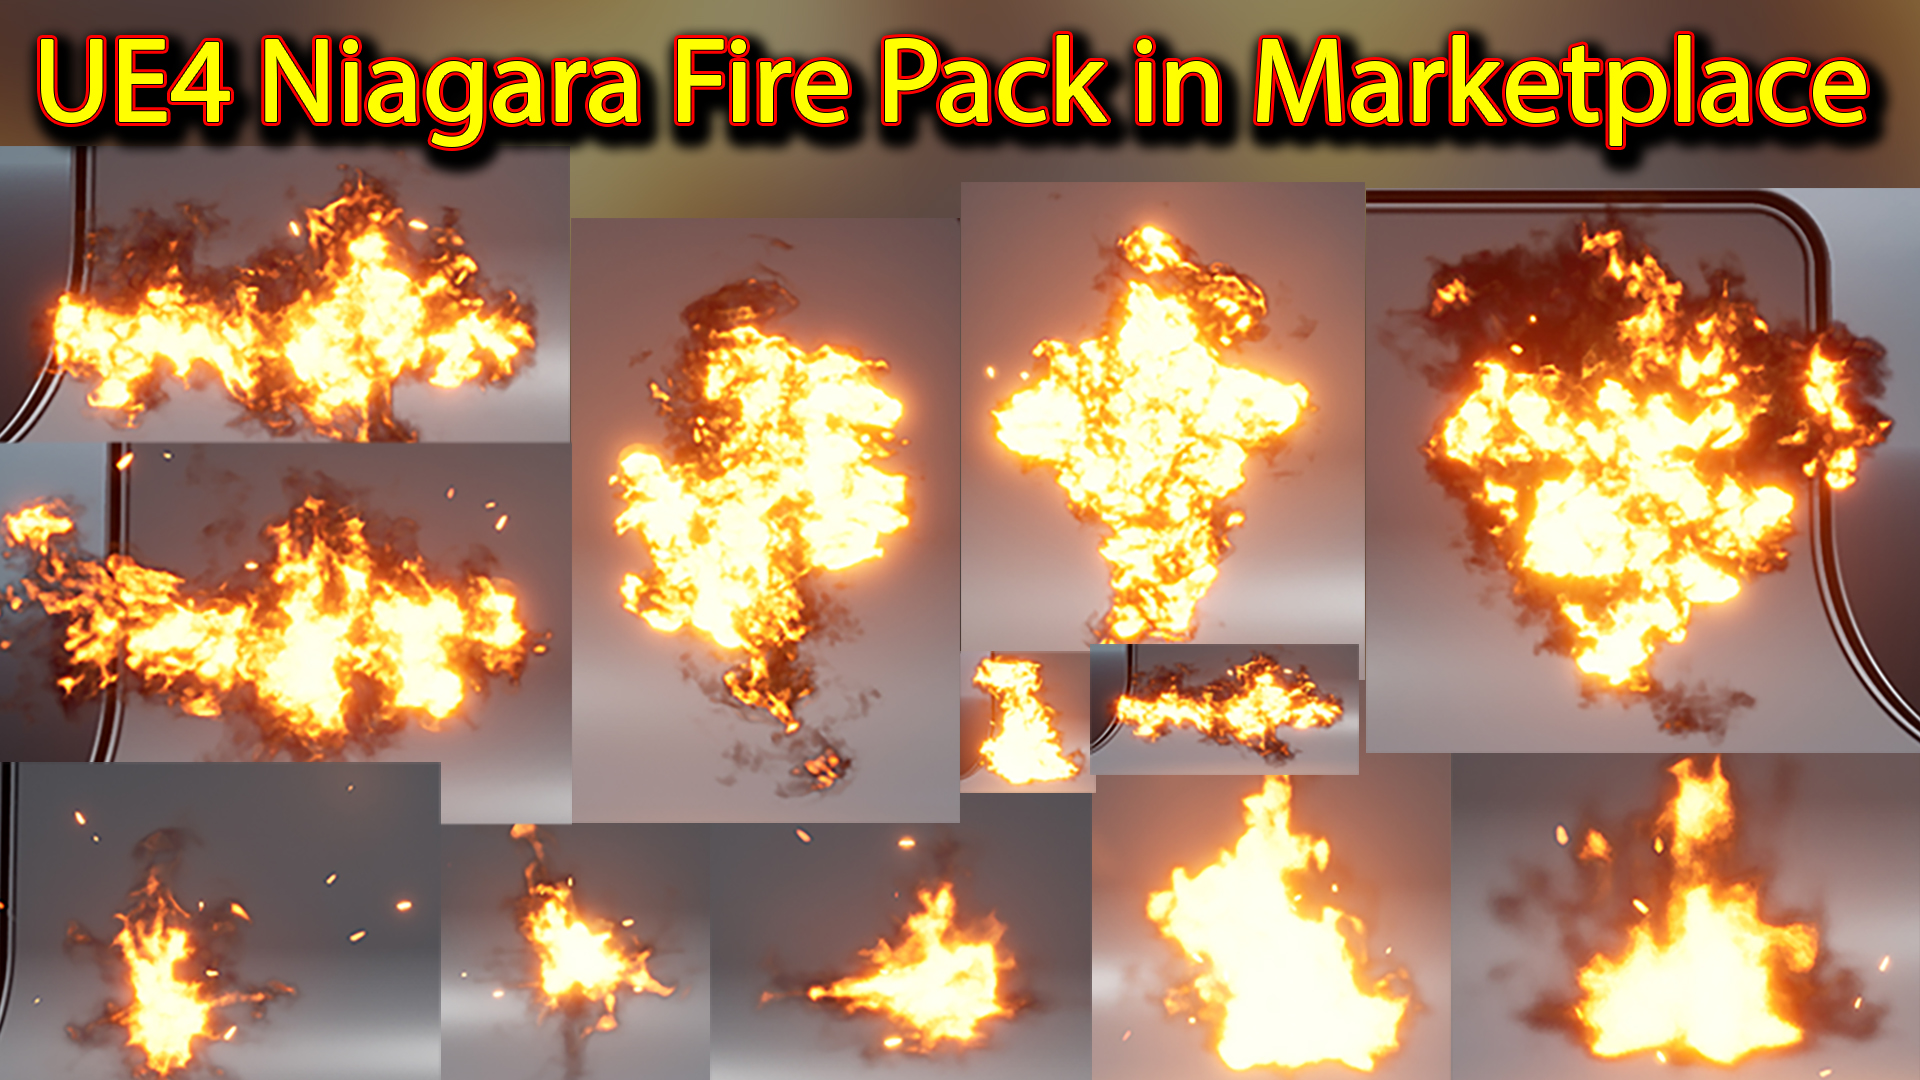 UE4 Niagara Fire Pack 01 in Marketplace